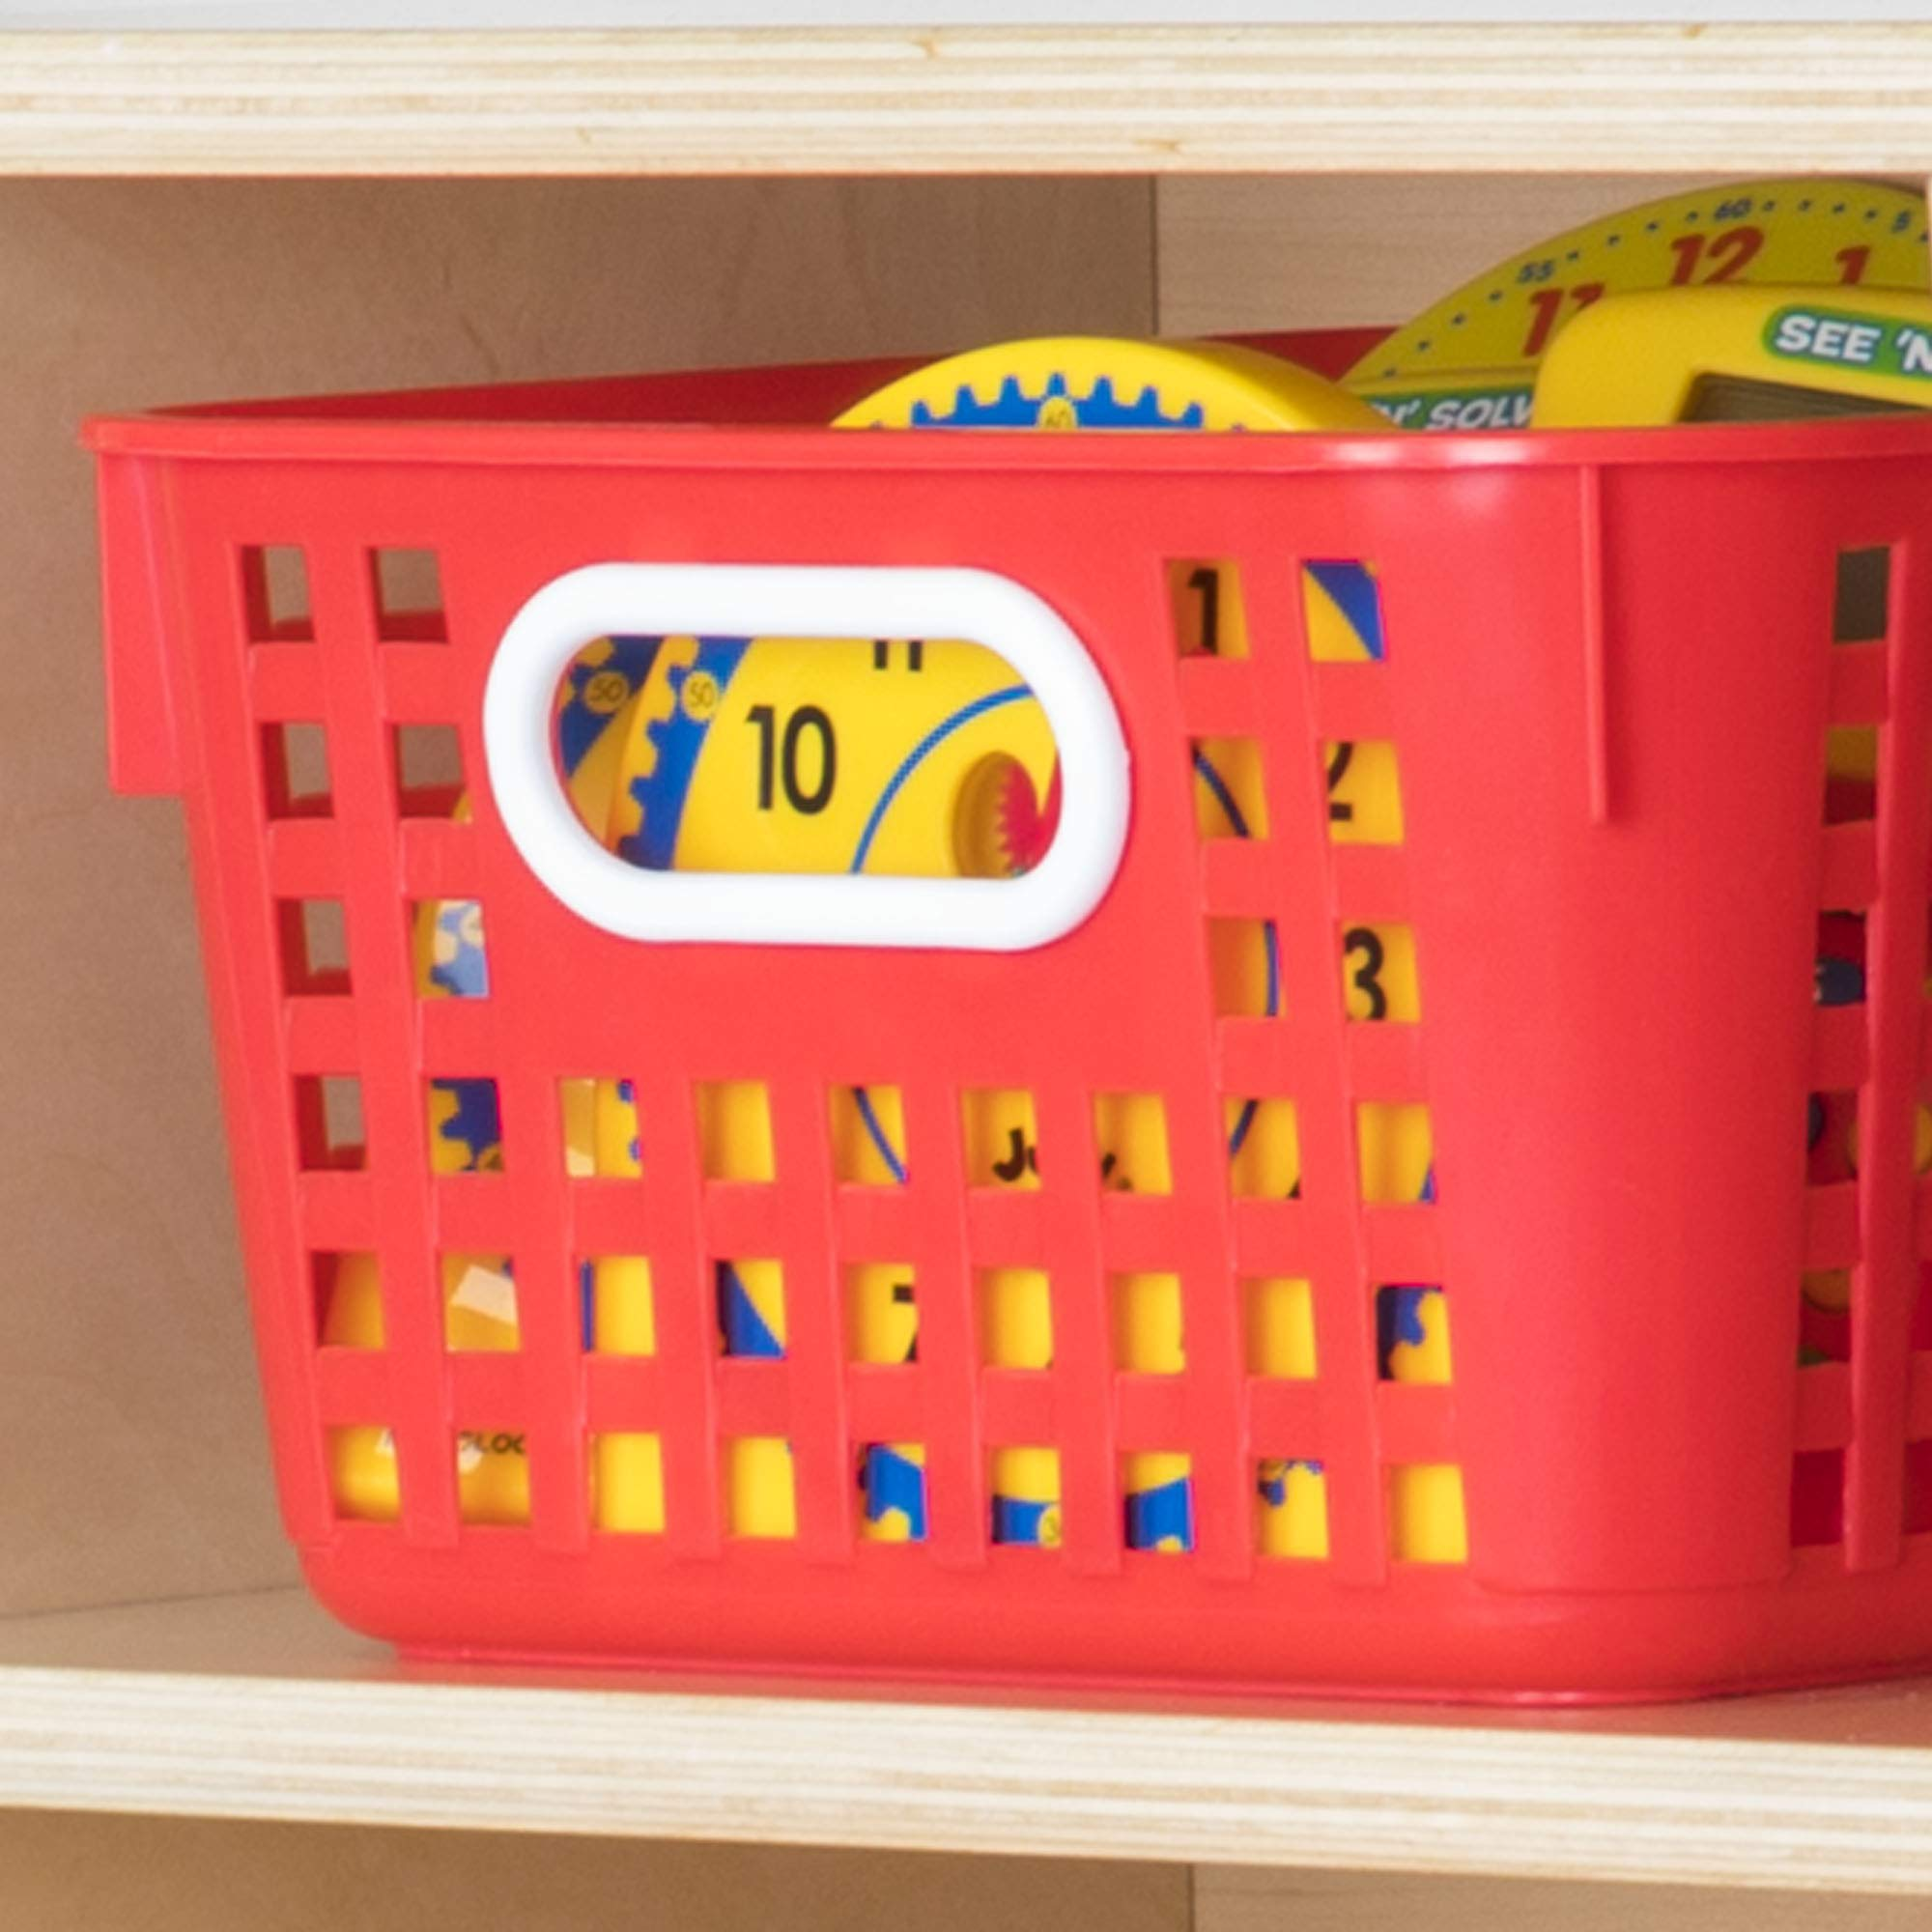 Really Good Stuff Plastic Storage Baskets for Classroom or Home Use - Fun Rainbow Colors - 13'' x 10'' (Set of 6) by Really Good Stuff